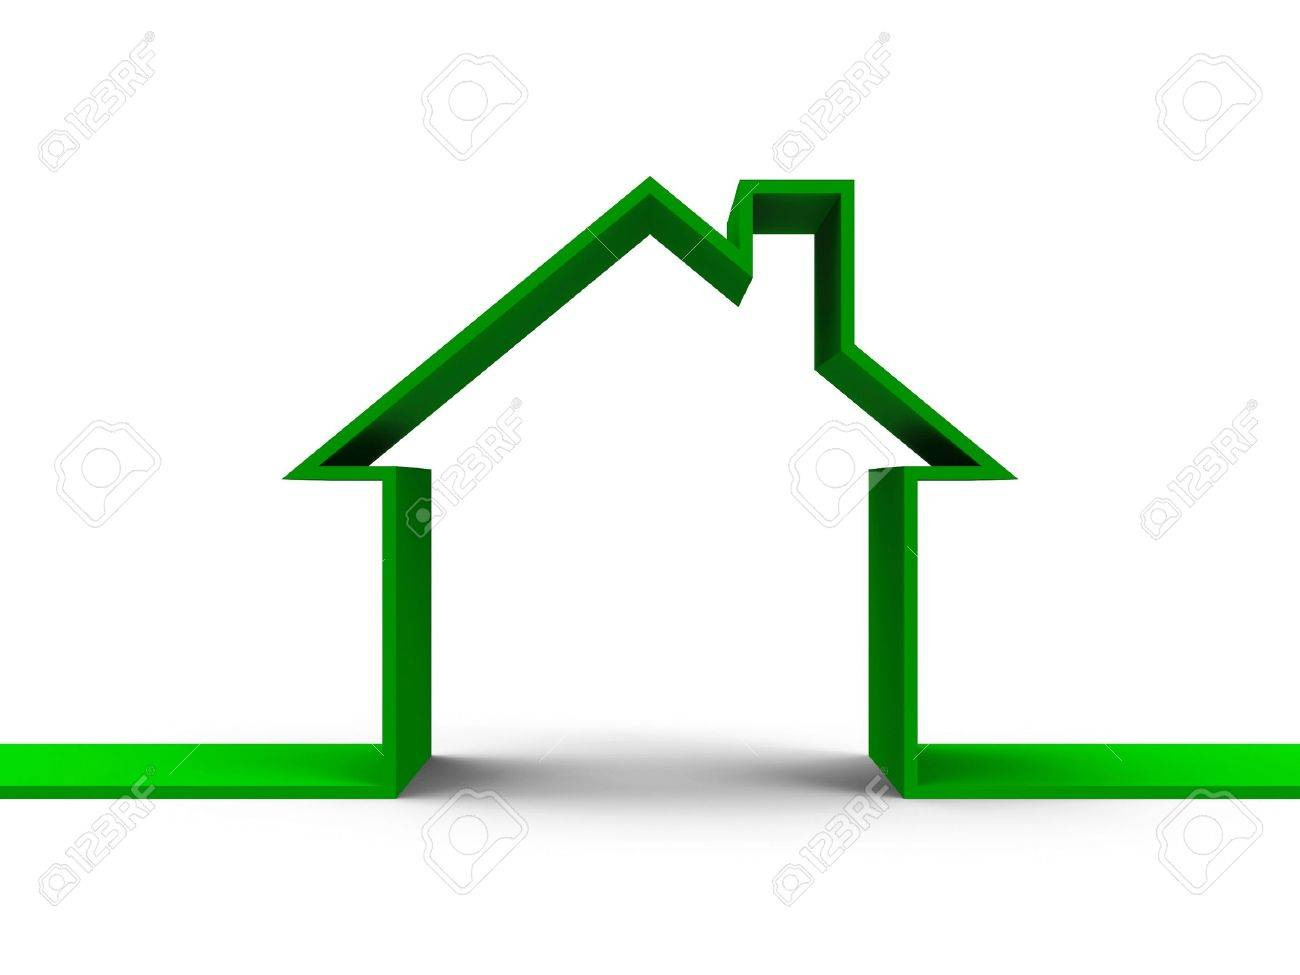 House outline picture - Green House Outline Concept Three Dimensional Rendering Stock Photo 19792324